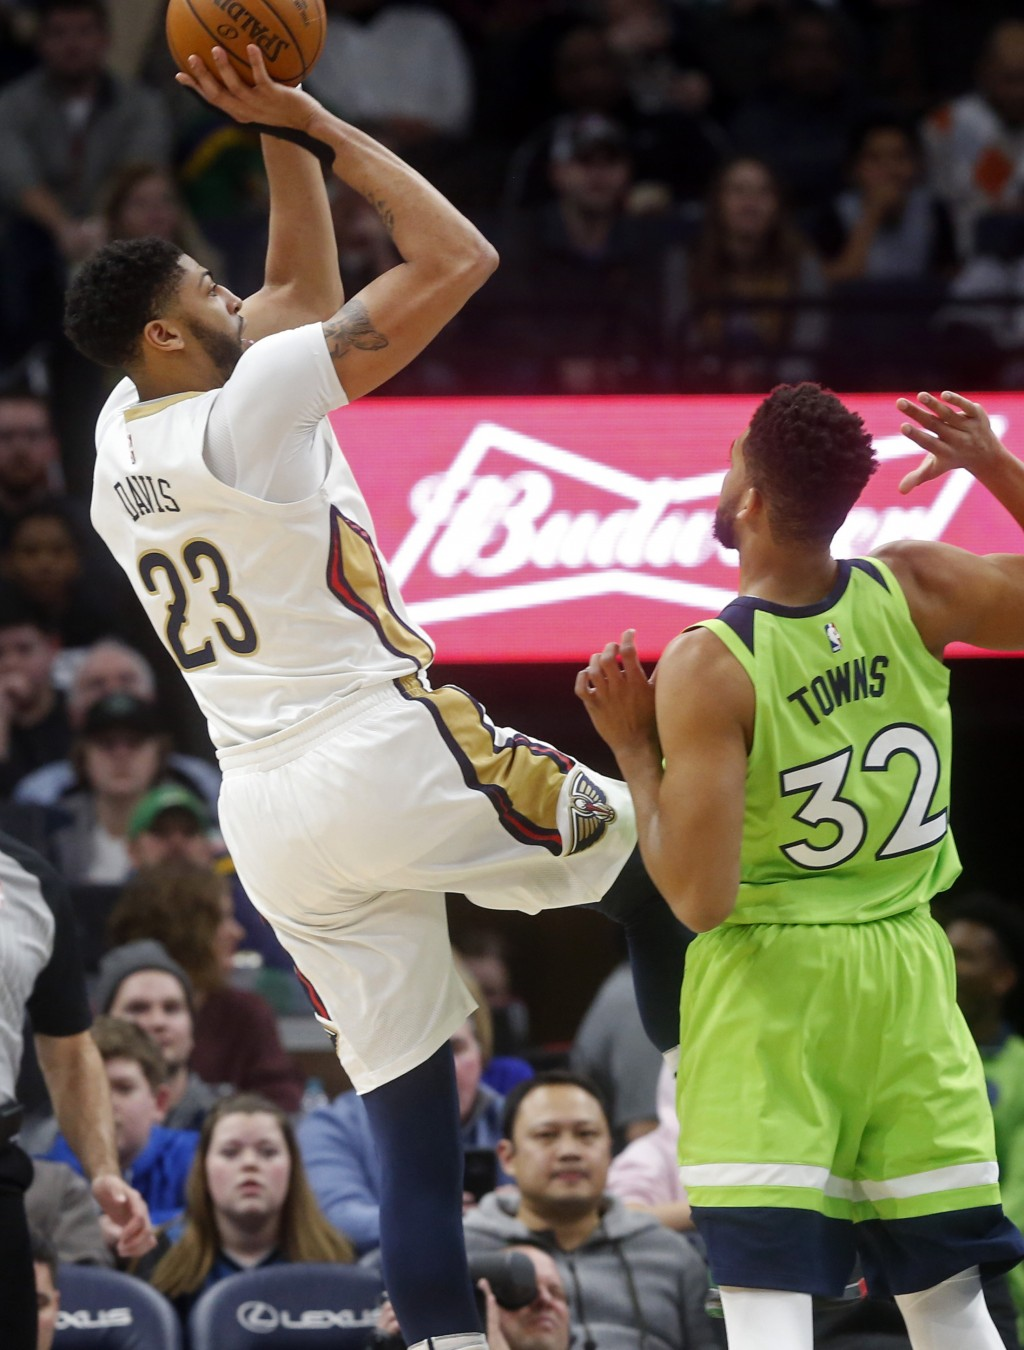 New Orleans Pelicans' Anthony Davis, left, shoots as Minnesota Timberwolves' Karl-Anthony Towns looks on in the first half of an NBA basketball game S...